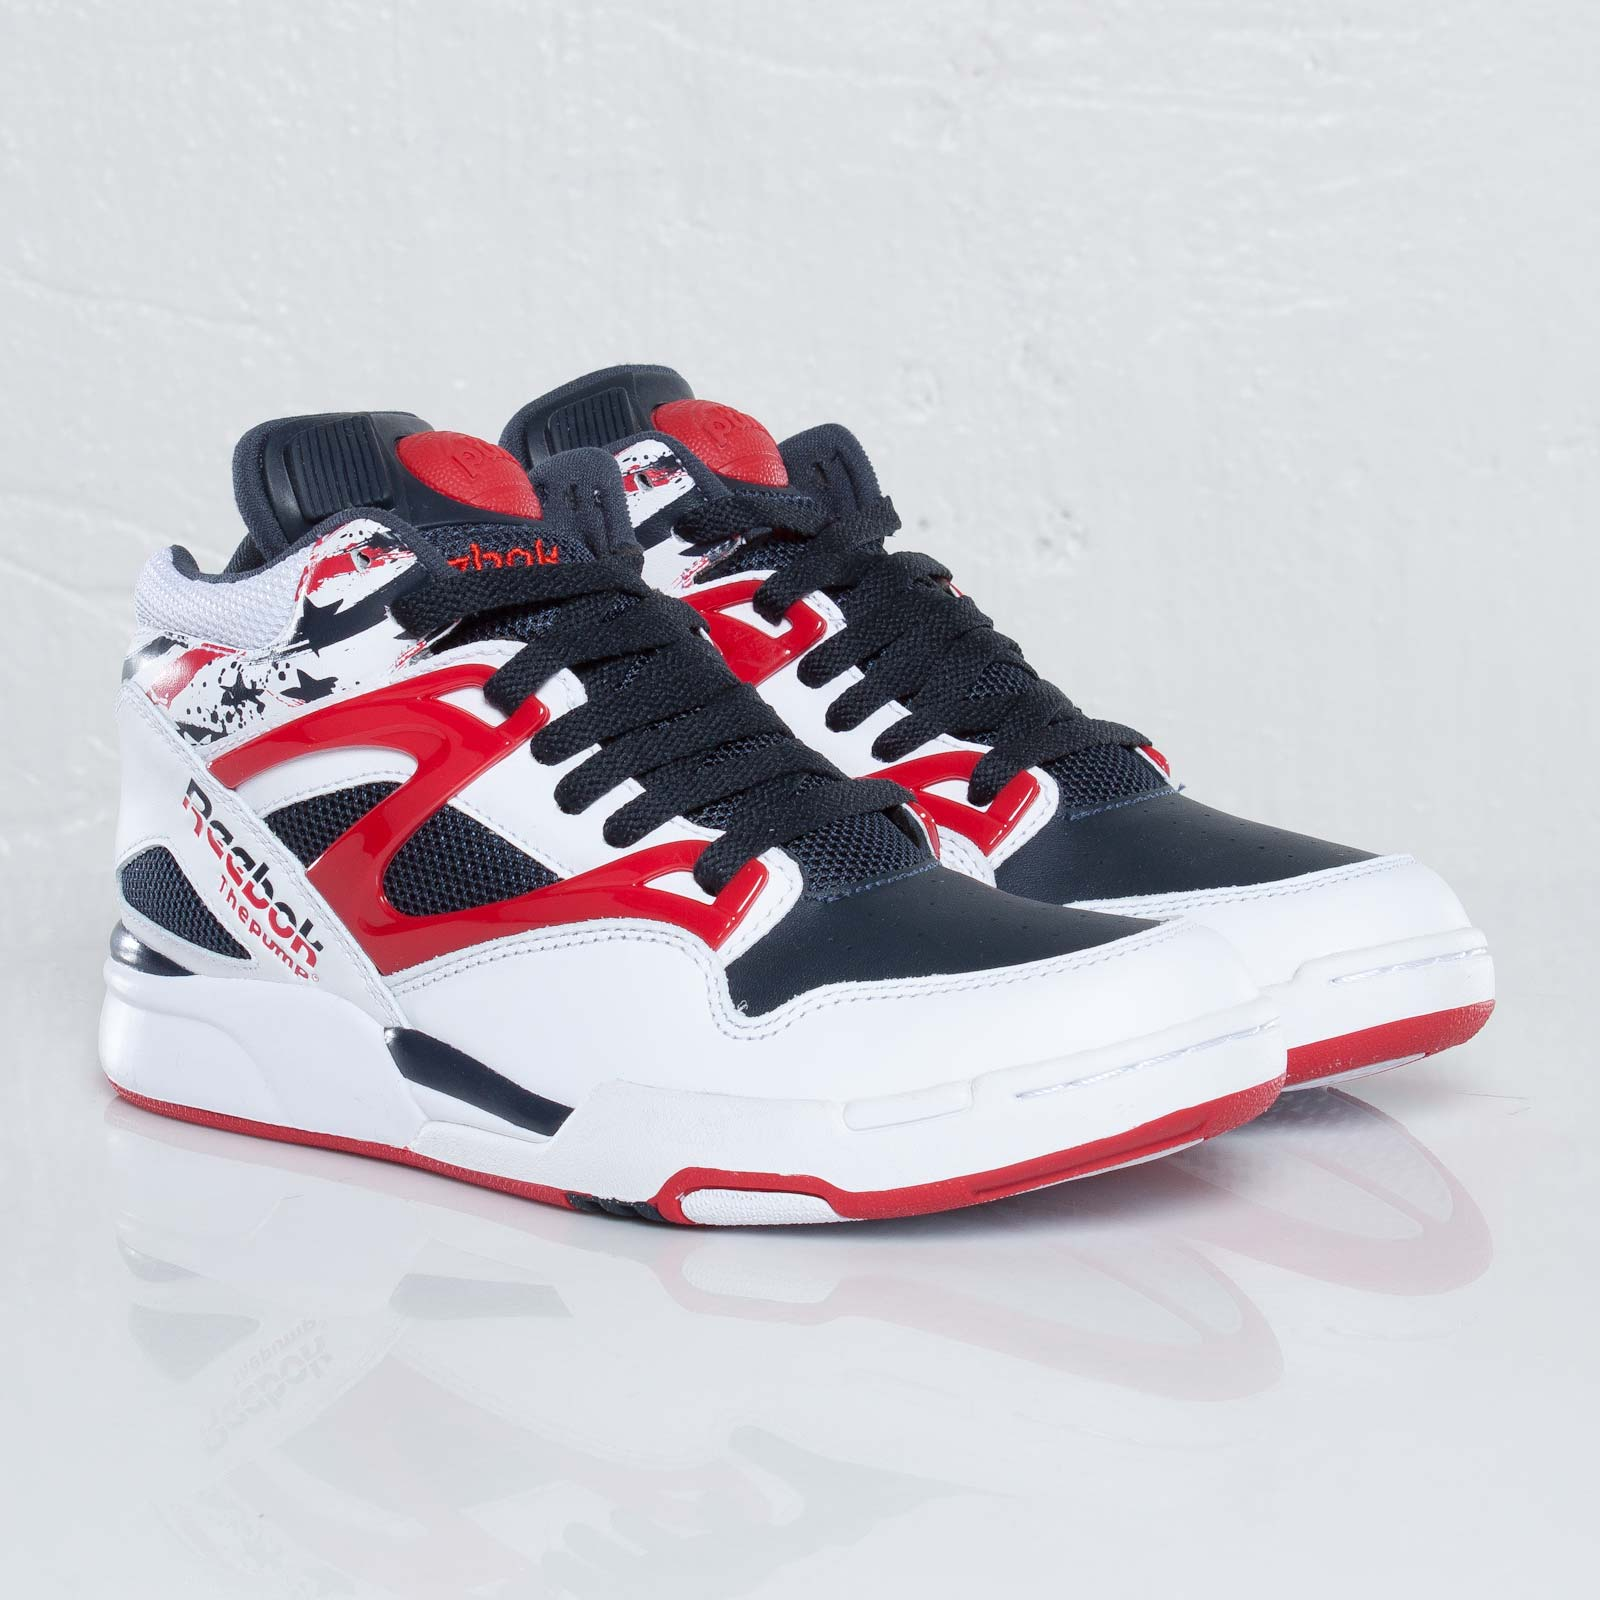 reebok pump omni lite olympic pack sneakers addict. Black Bedroom Furniture Sets. Home Design Ideas